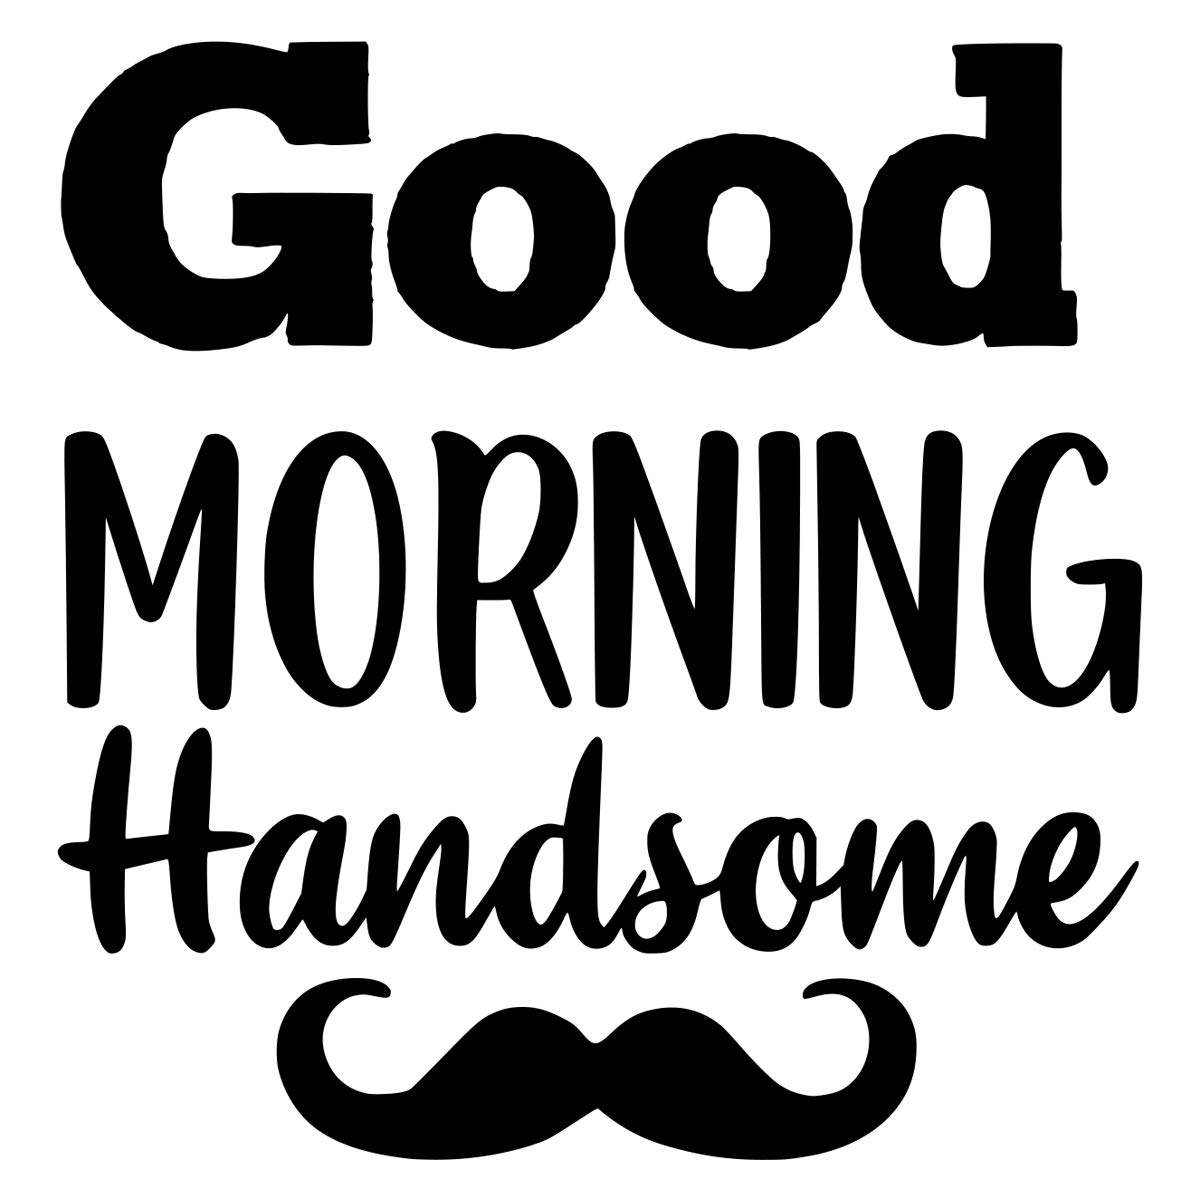 """Simply Remarkable """"Good Morning Handsome"""" Boy and Men Vinyl Decal for Bathroom, Kitchen, Restaurant, Mirror, School, Wall Sign Décor Gifts. Promotes Virus Safety Health (5"""